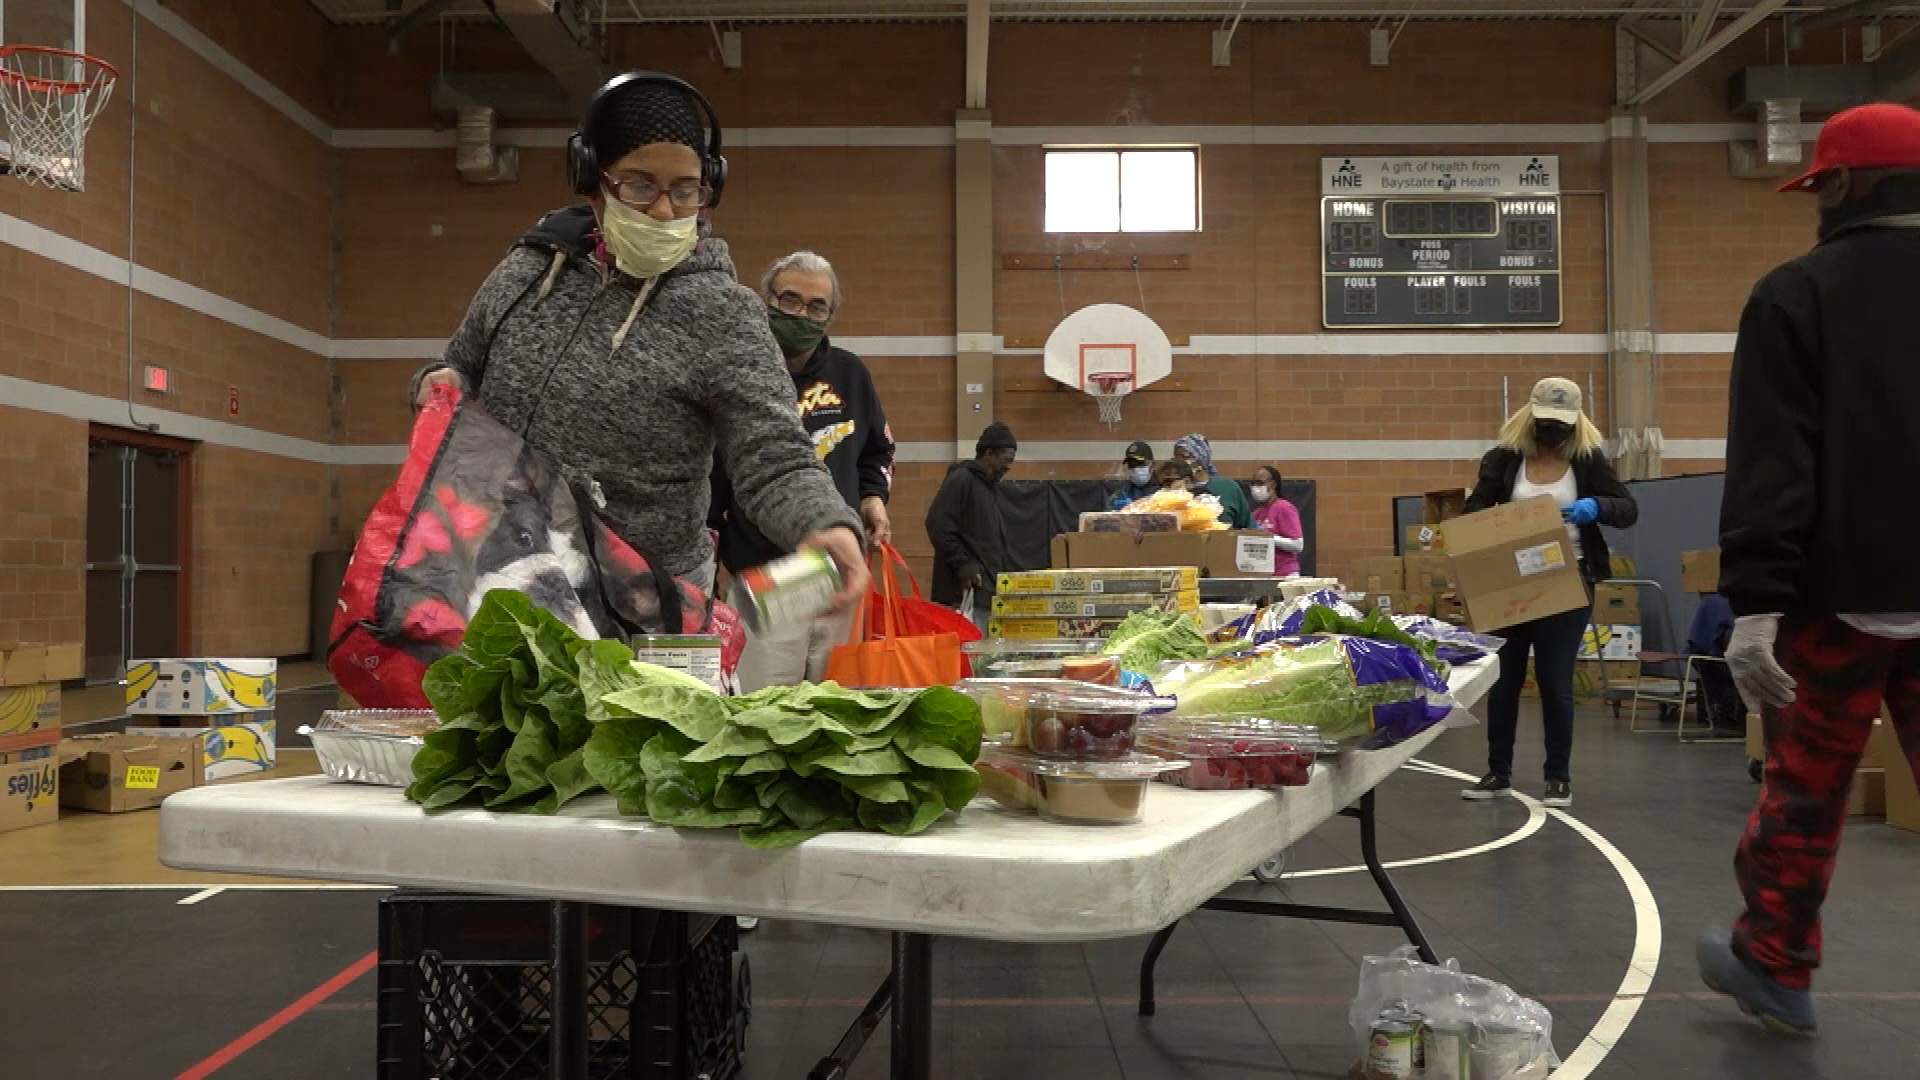 In response to increasing food insecurity due to the coronavirus, MLK Jr. Family Center launched a food delivery service to help the most vulnerable.